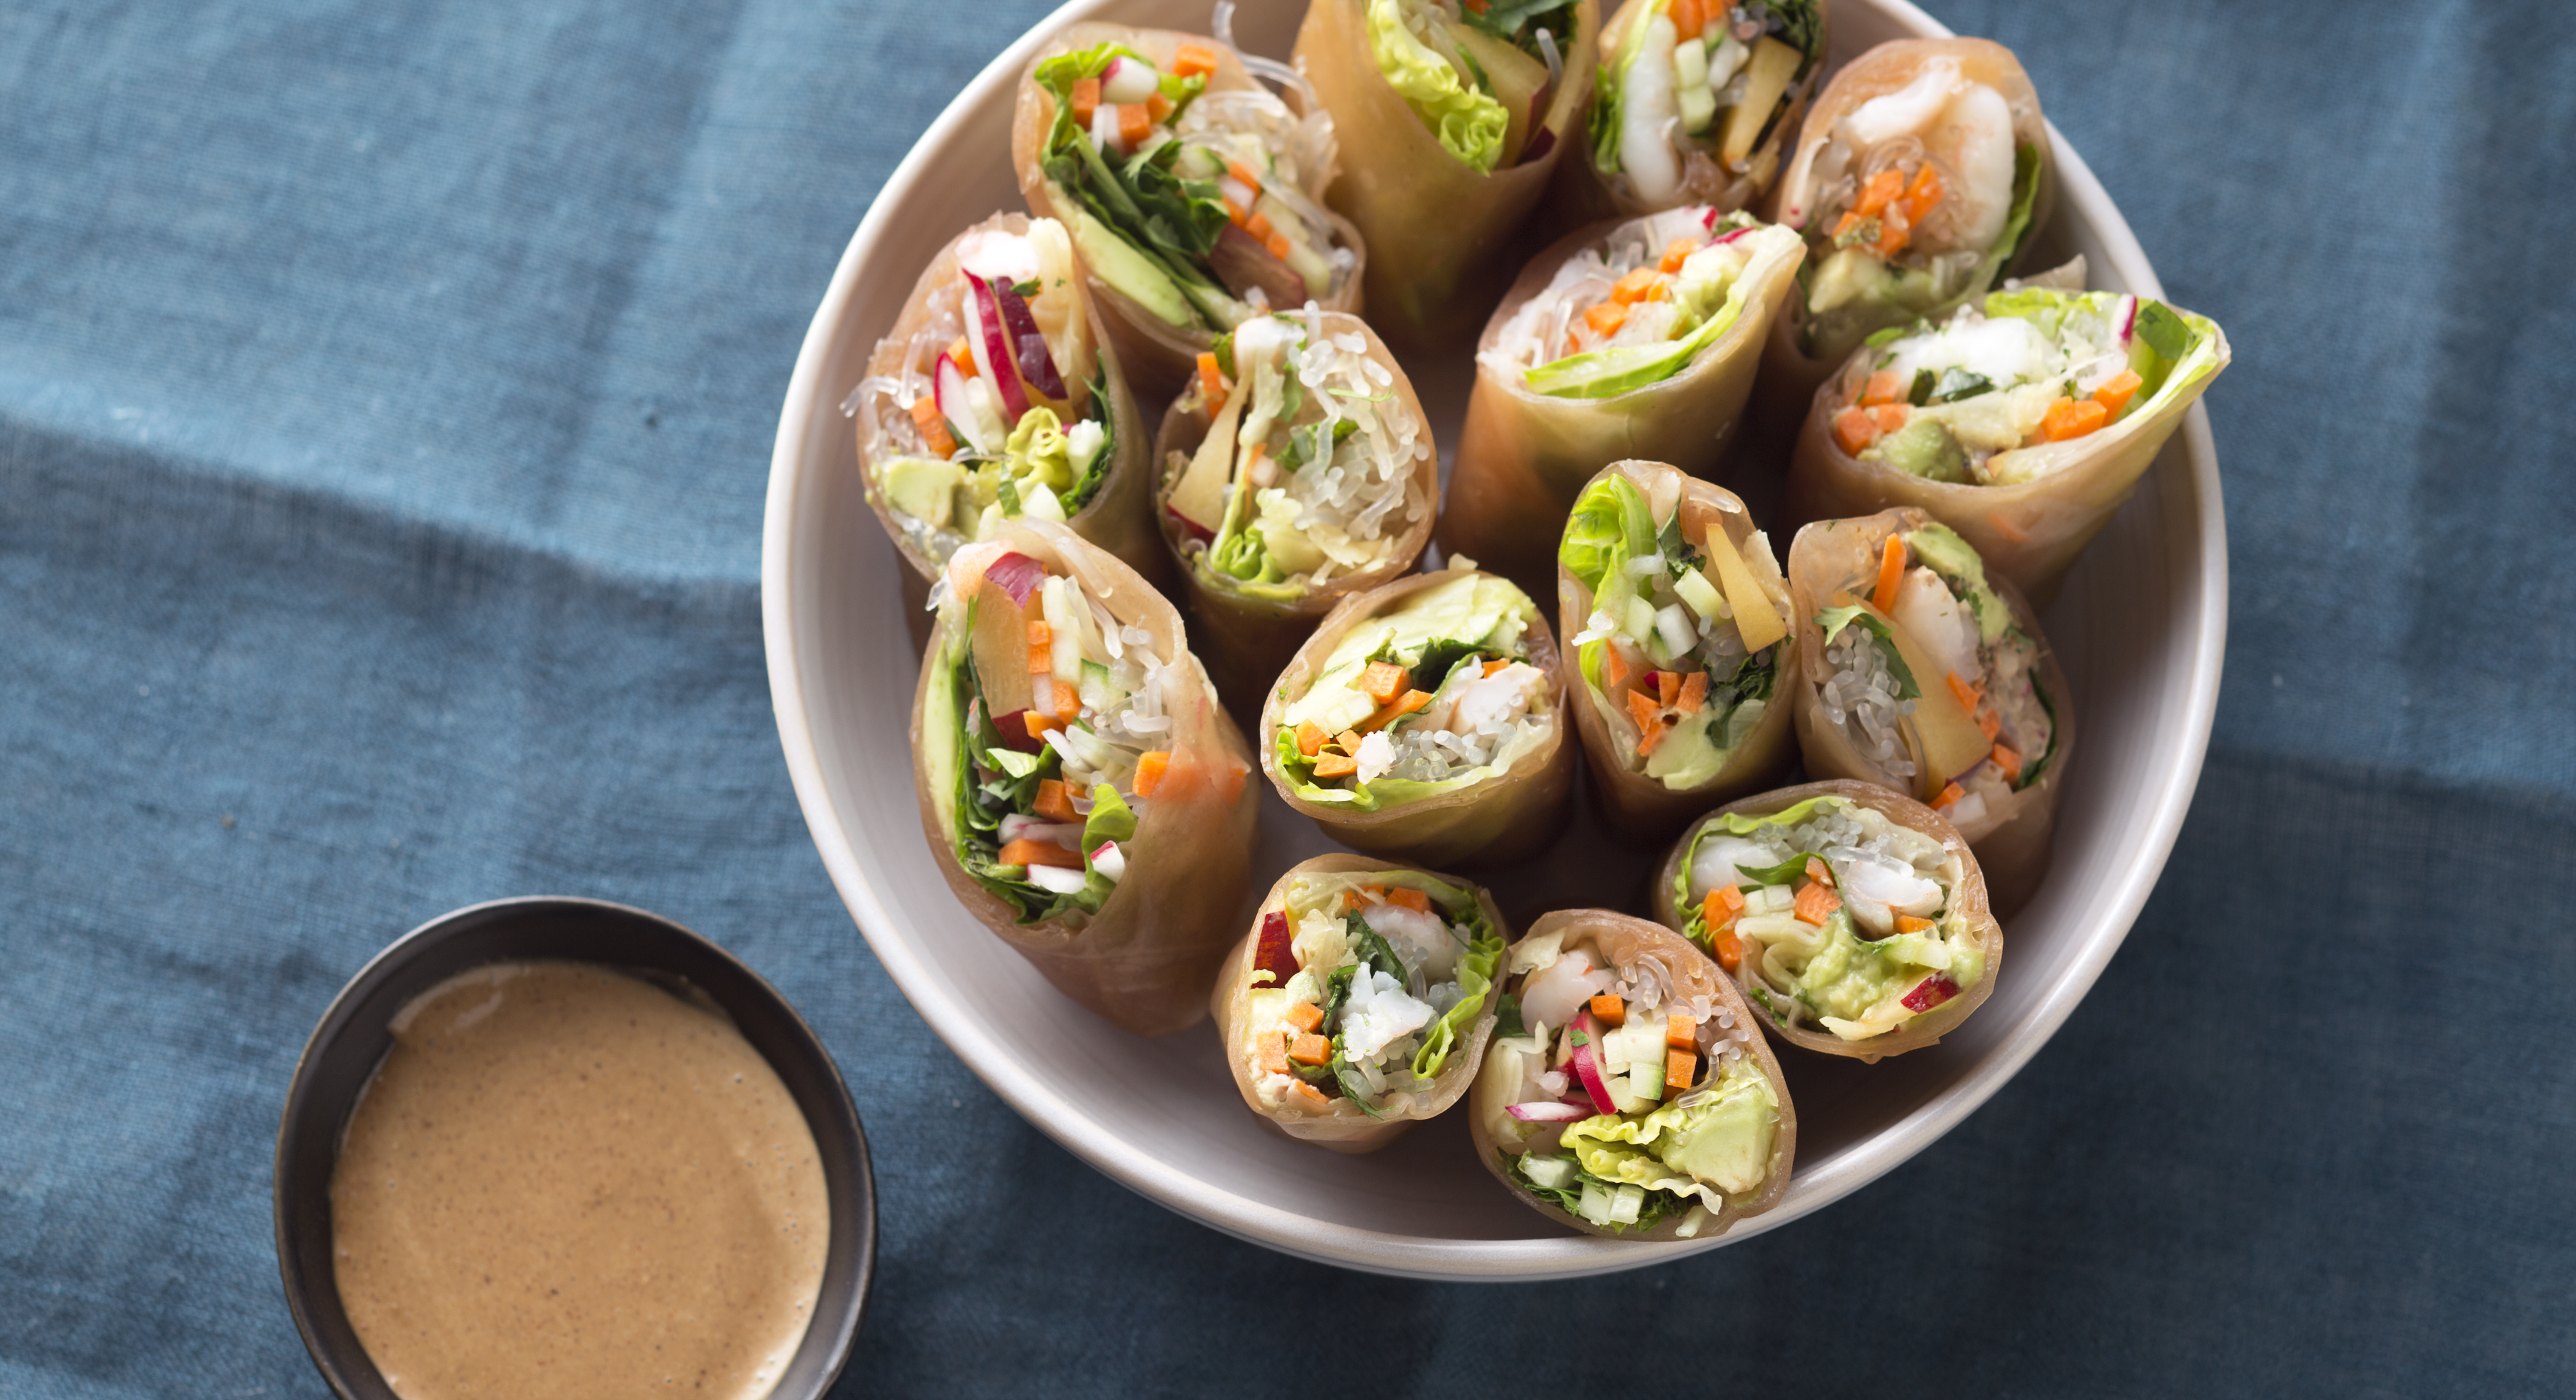 Learn to Make Fresh Spring Rolls In Four Easy Steps